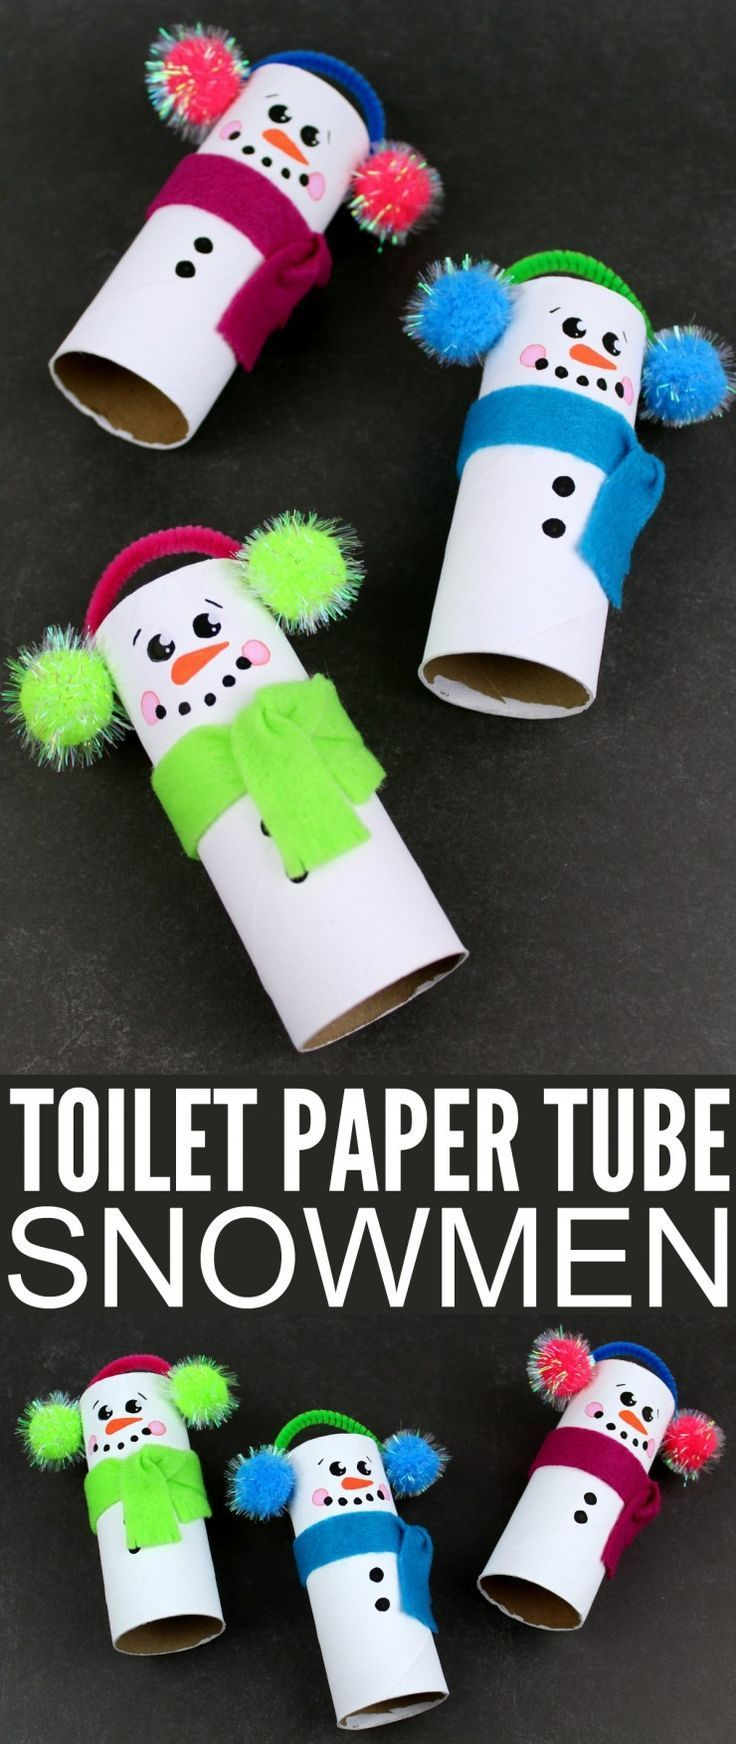 48+ Toilet paper tube crafts christmas ideas in 2021